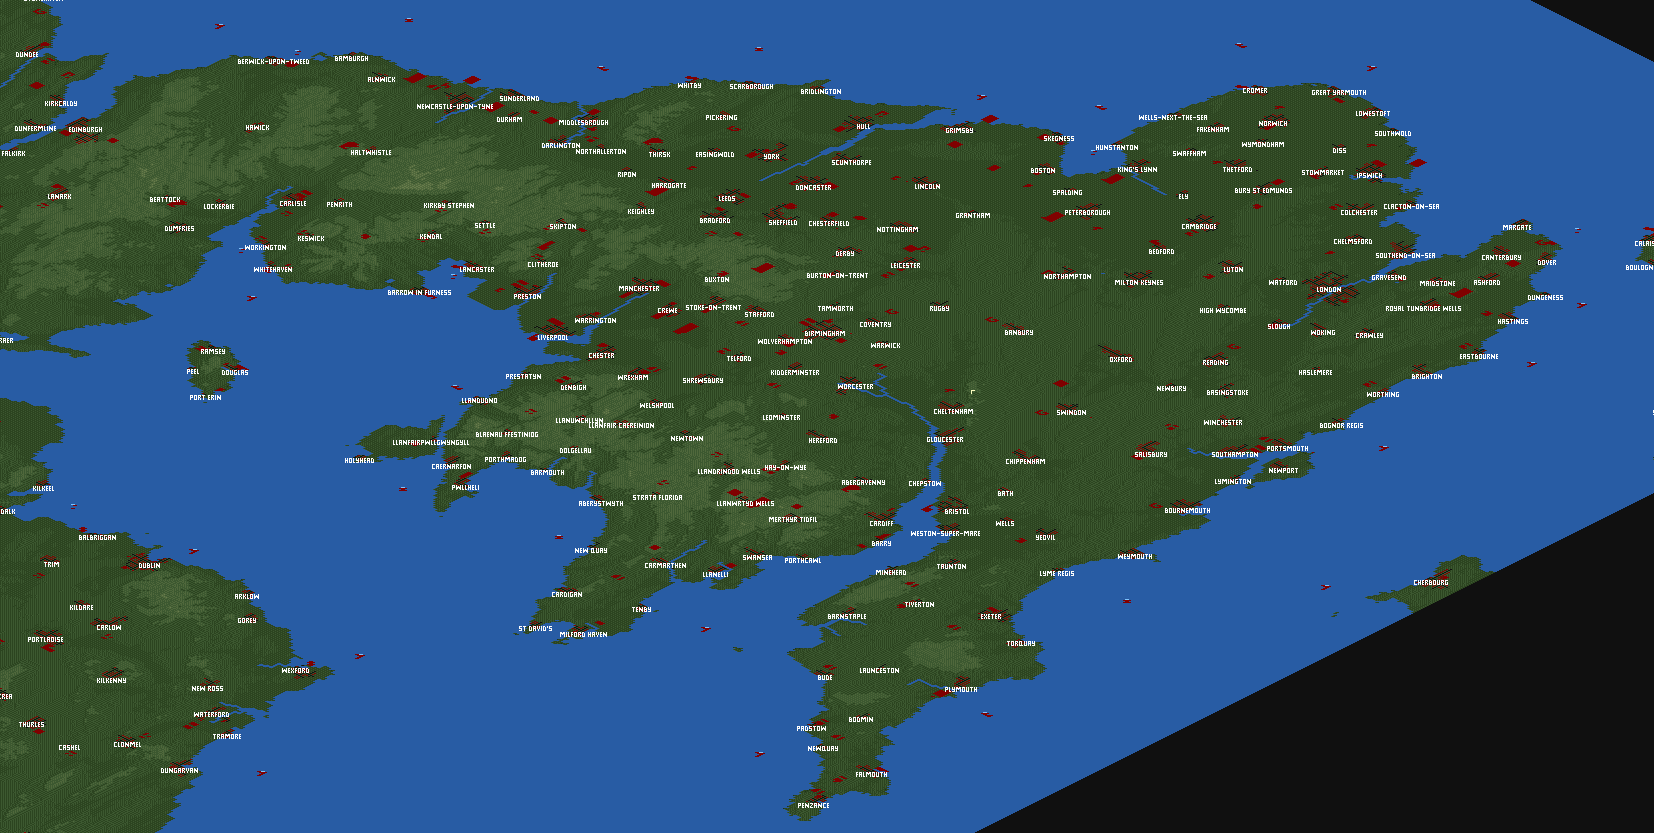 Dpks united kingdom and ireland scenario 1900 for openttd map screenshots of england and wales gumiabroncs Image collections